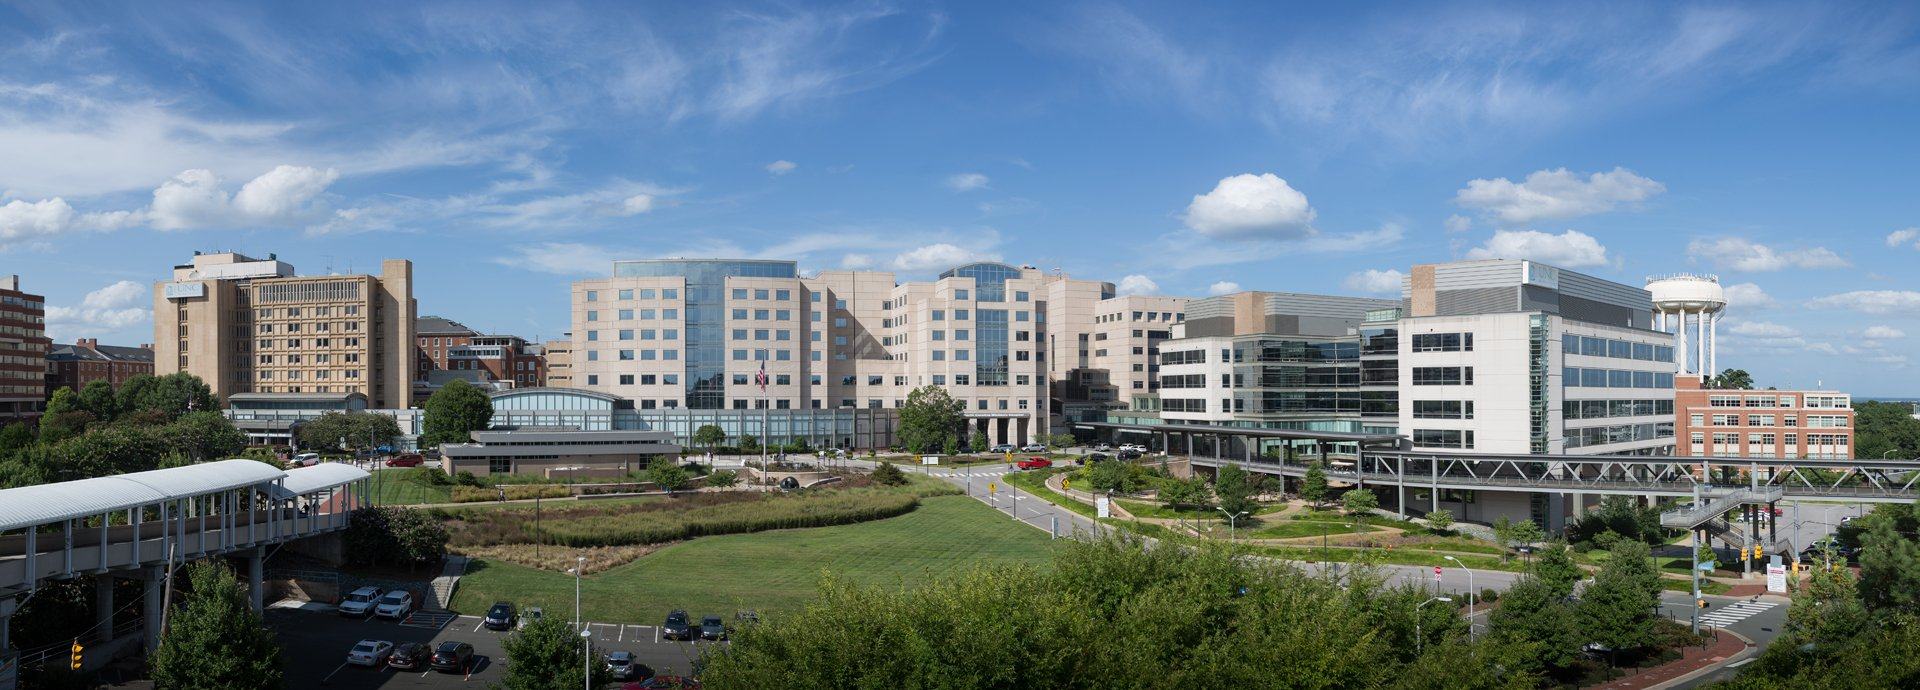 NC Memorial, UNC Children's, NC Neurosciences, NC Women's and NC Cancer hospitals - panoramic view